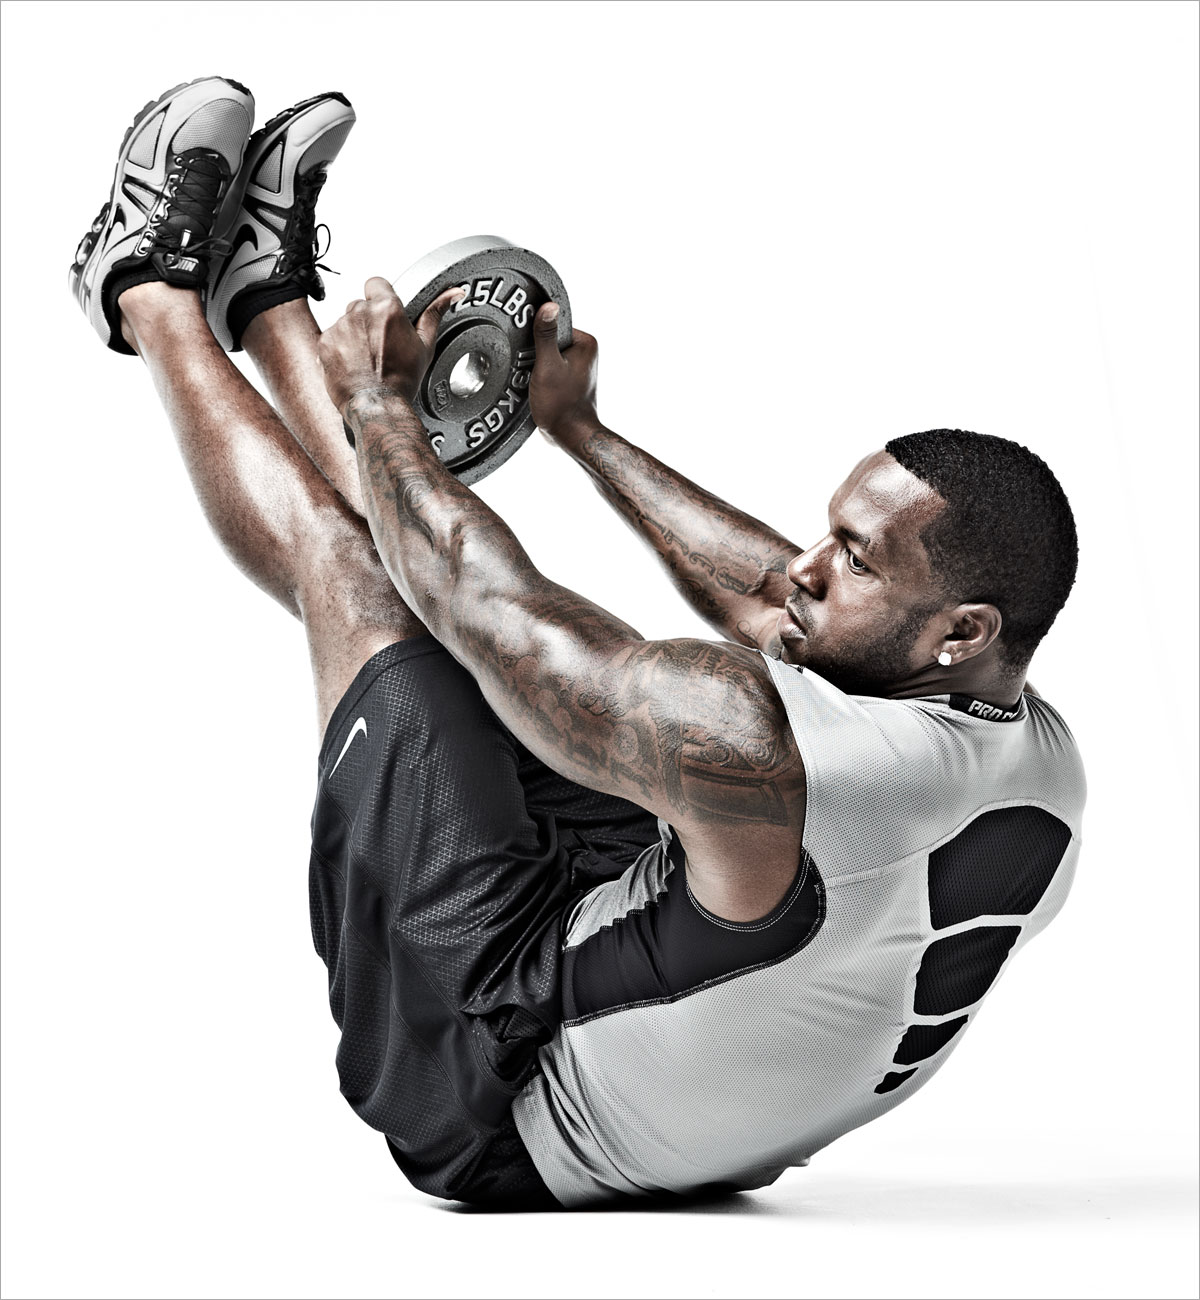 Patrick_Willis_Weighted_SitUp_058-DUP.jpg